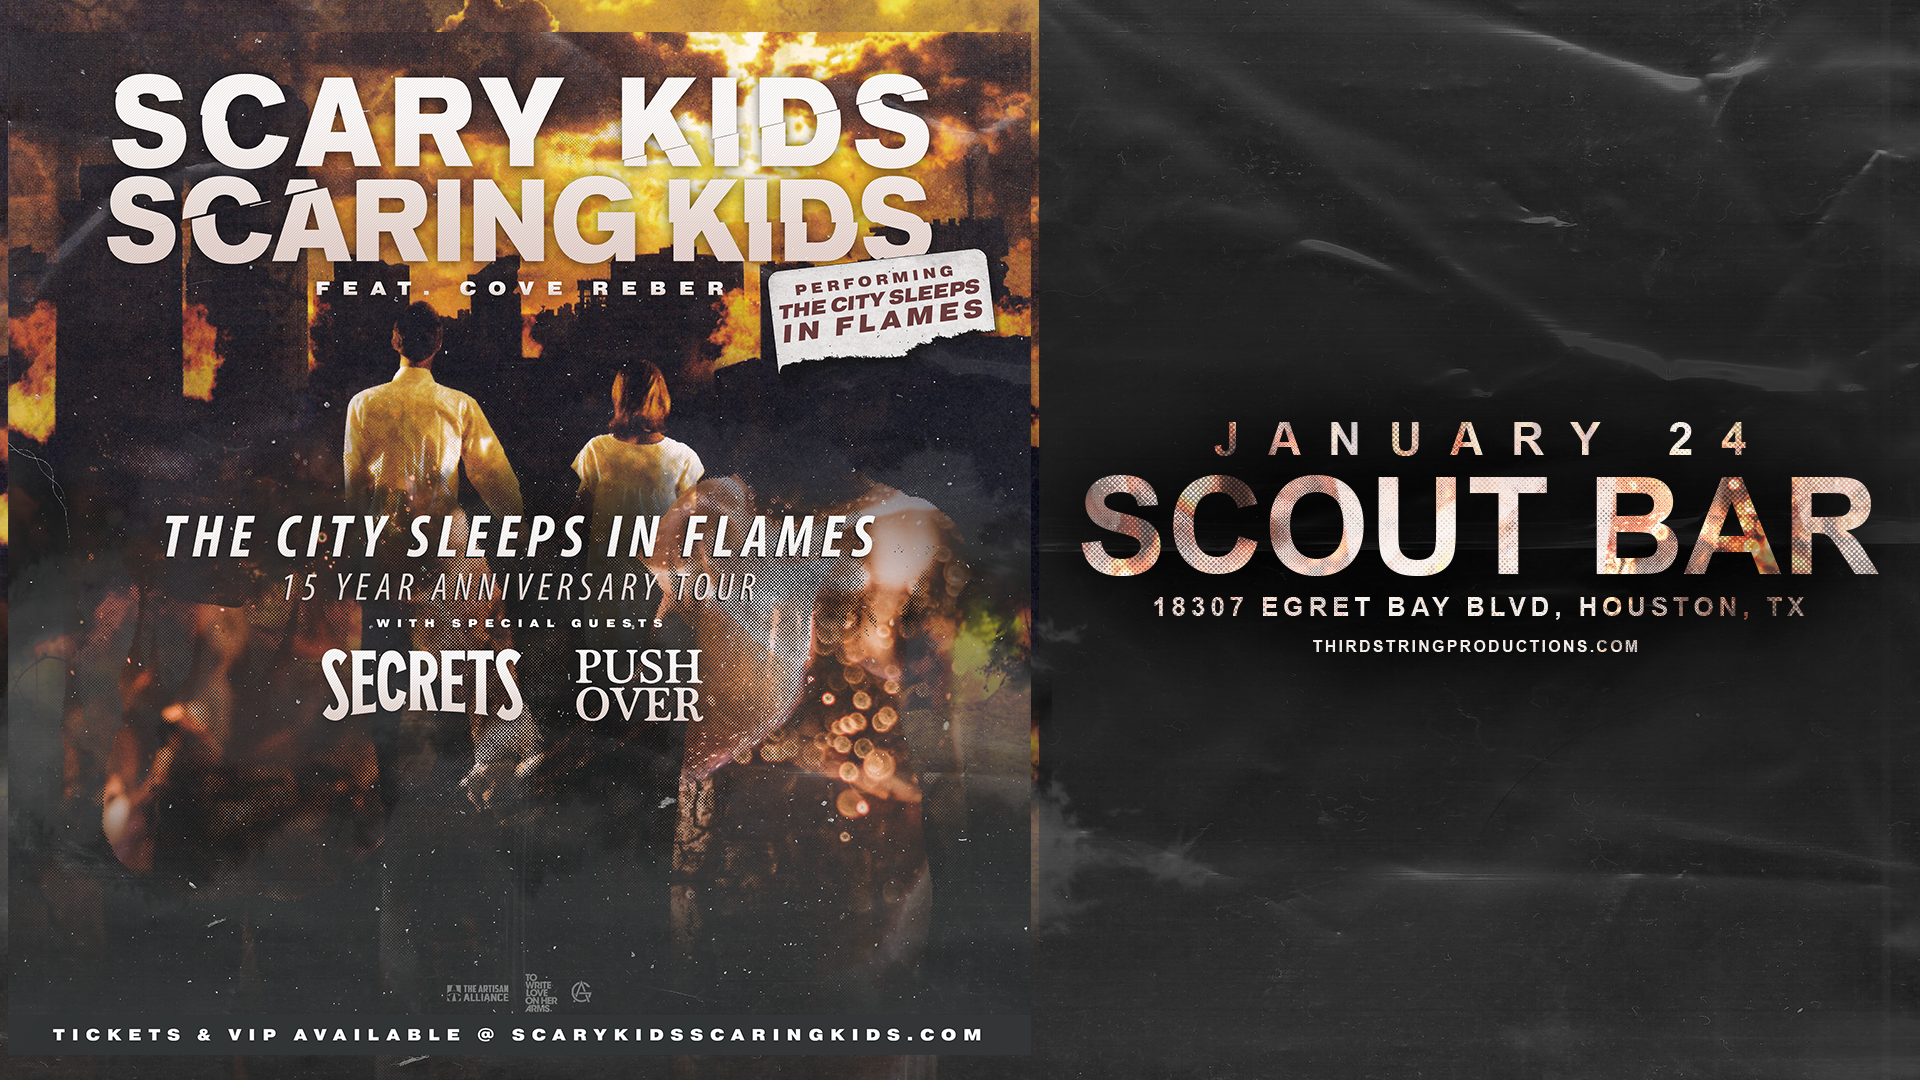 Scary Kids Scaring Kids at Scout Bar